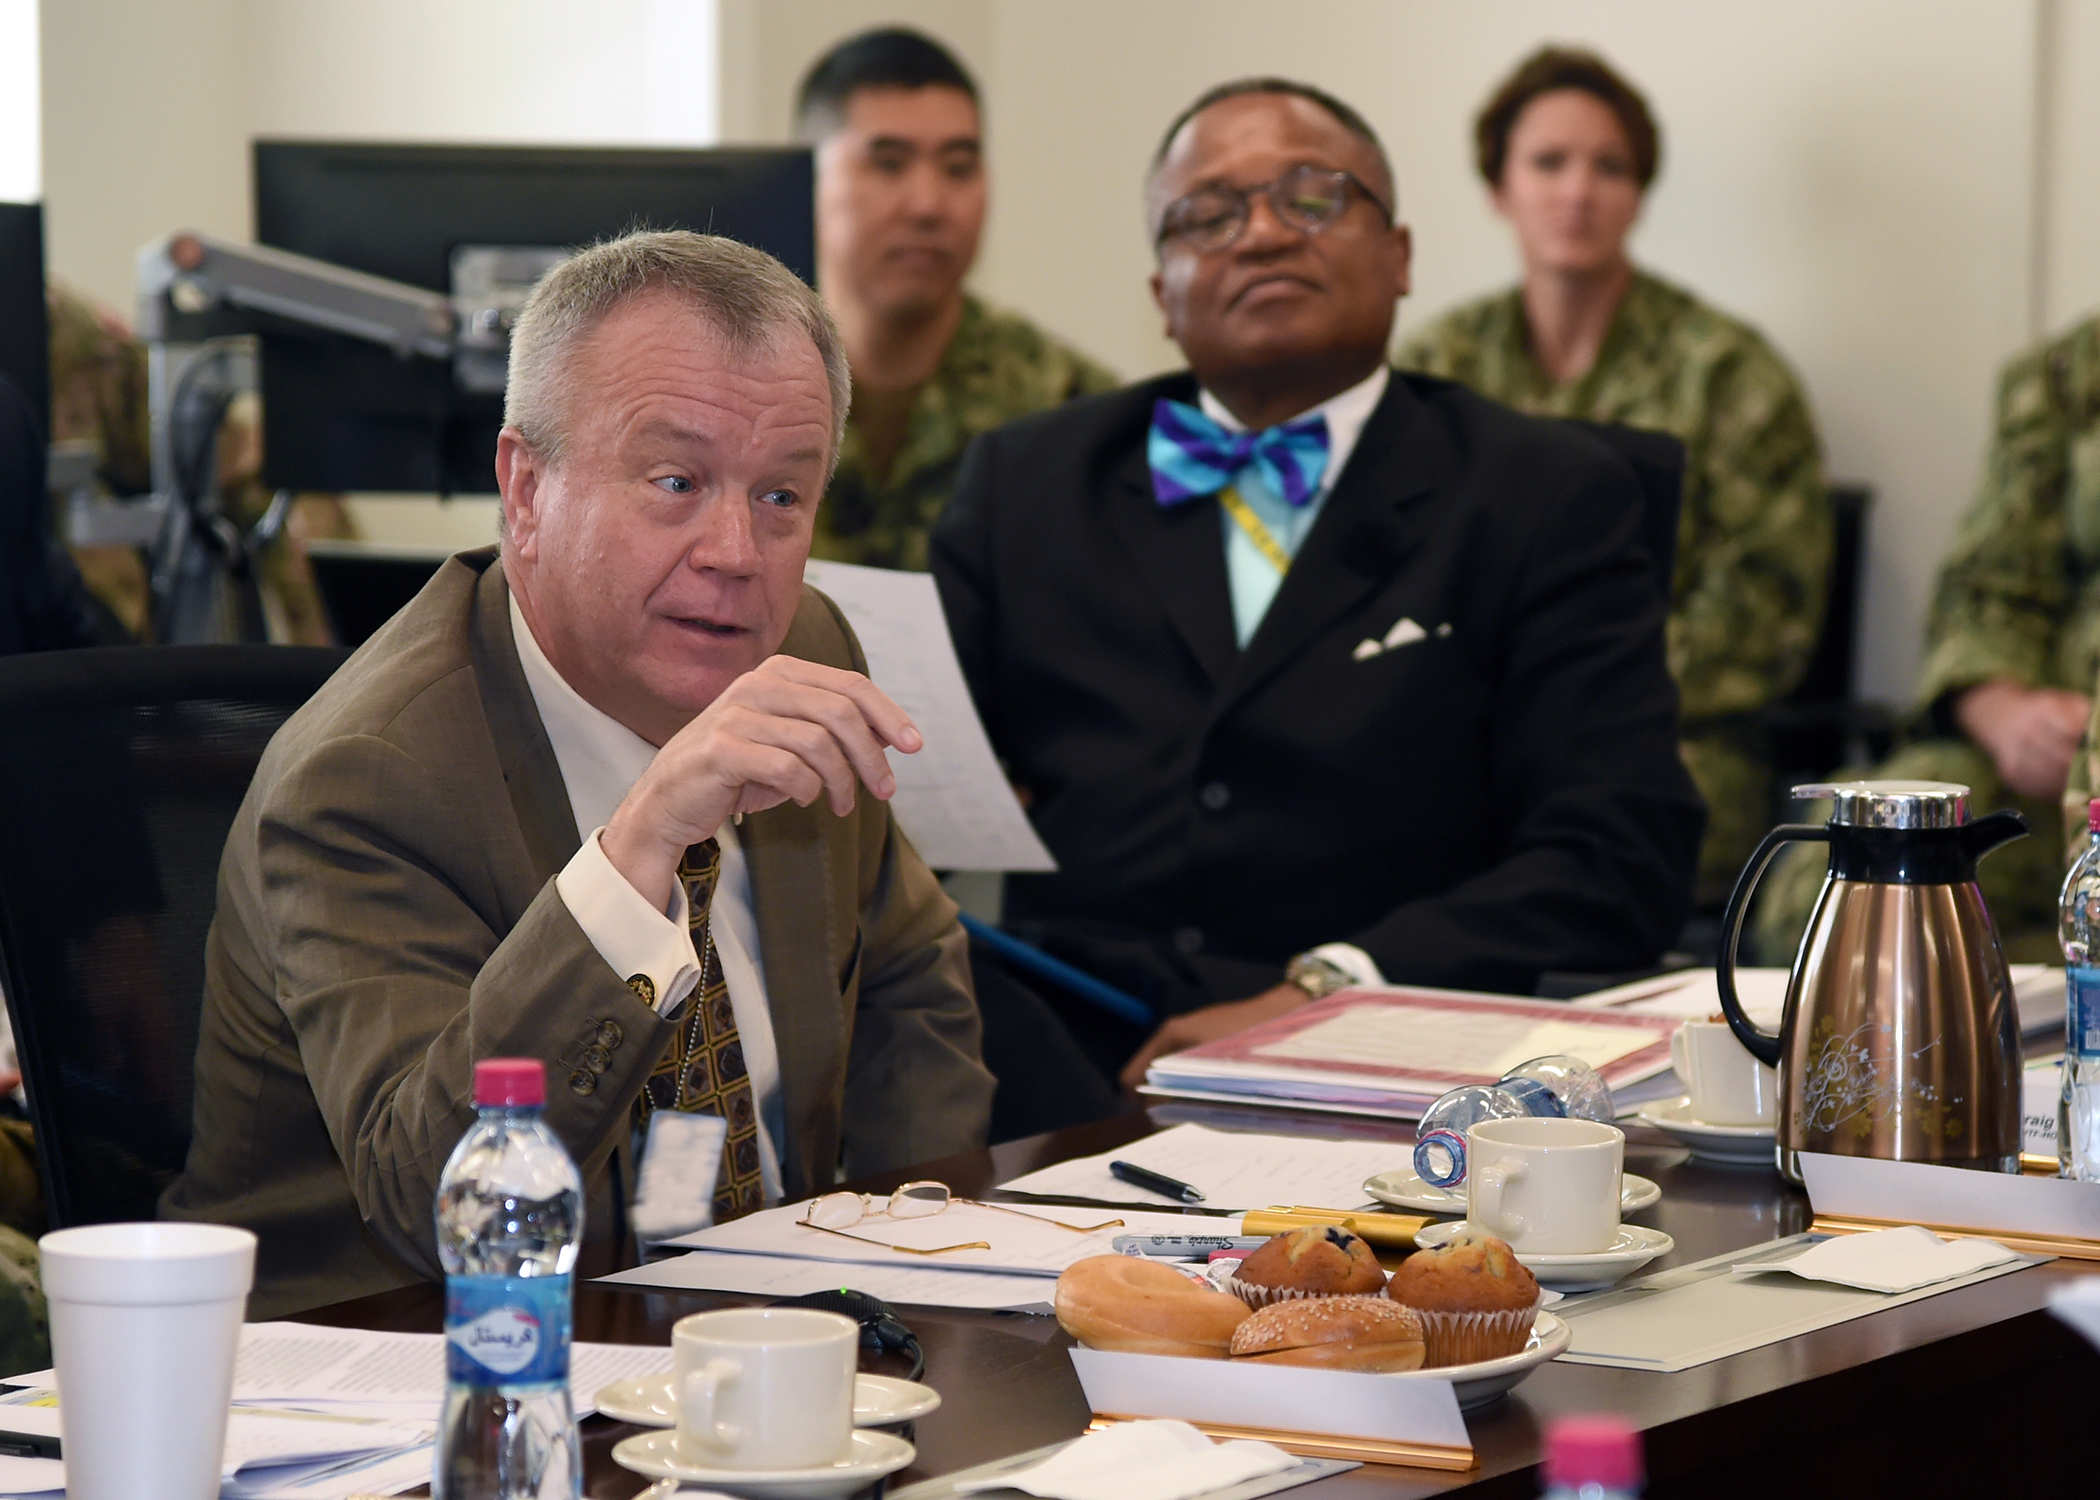 Amb. Larry André, U.S. Ambassador to Djibouti, addresses U.S. diplomats and joint service personnel during a meeting at the Combined Joint Task Force-Horn of Africa (CJTF-HOA) East Africa Security Forum (EASF) at Camp Lemonnier, Djibouti Dec. 12, 2018. The EASF provides opportunities for CJTF-HOA and interagency leaders to assess and align efforts, and develop synchronized courses of action that support common goals. (U.S. Navy photo by Mass Communication Specialist 1st Class Nick Scott)